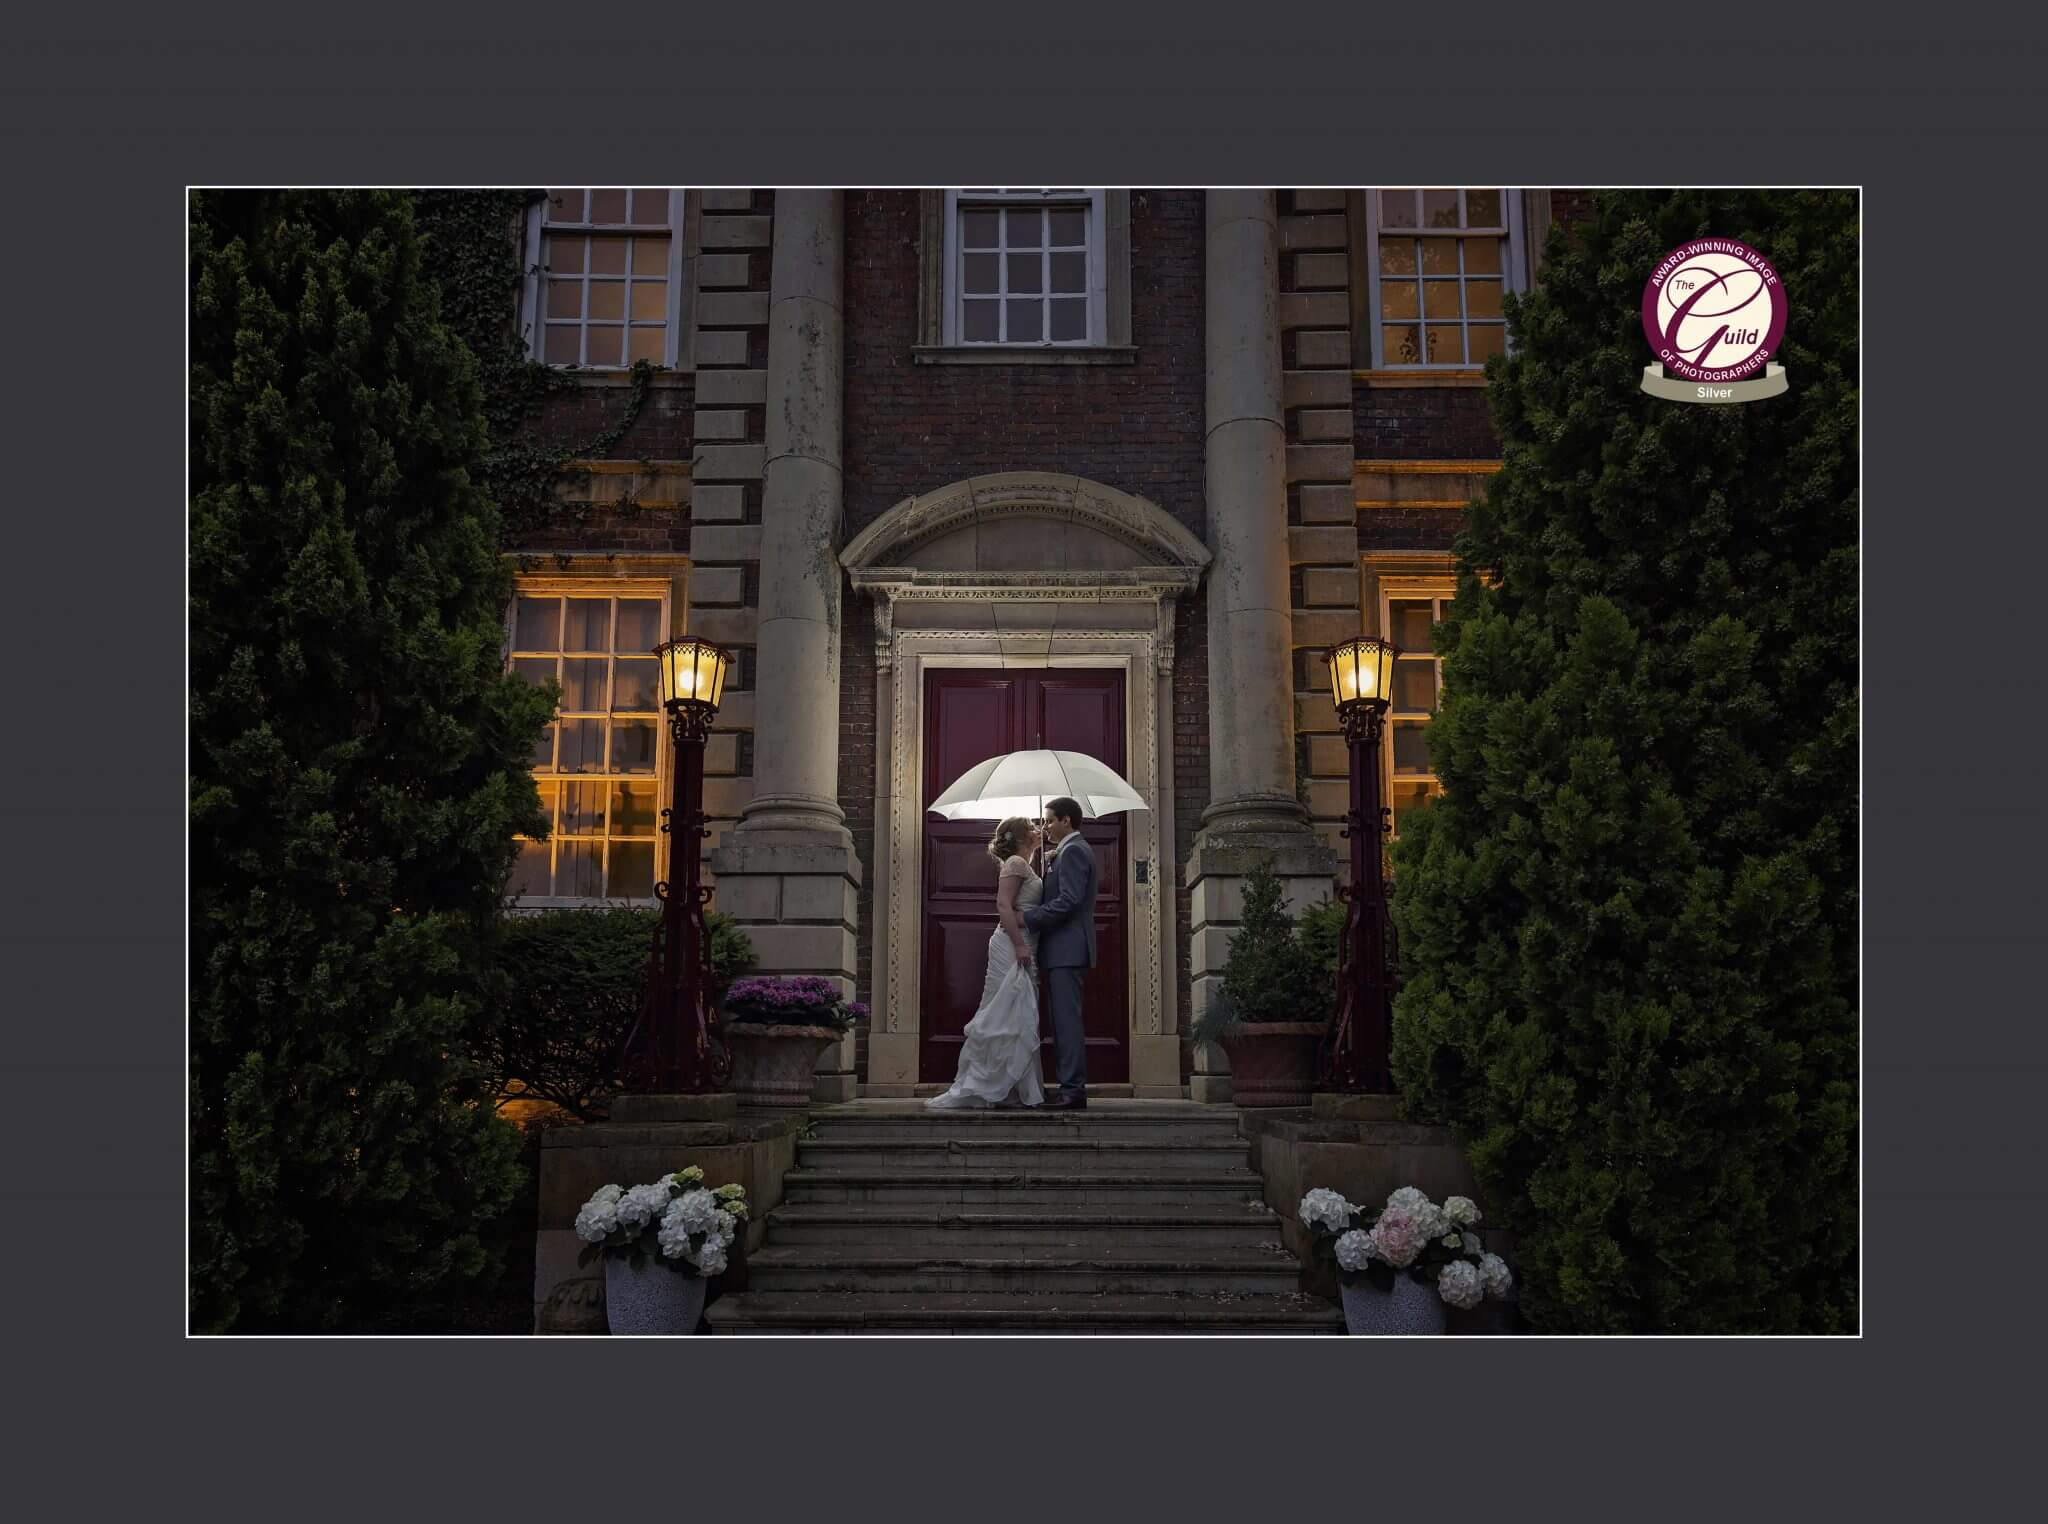 Silver award winning wedding images